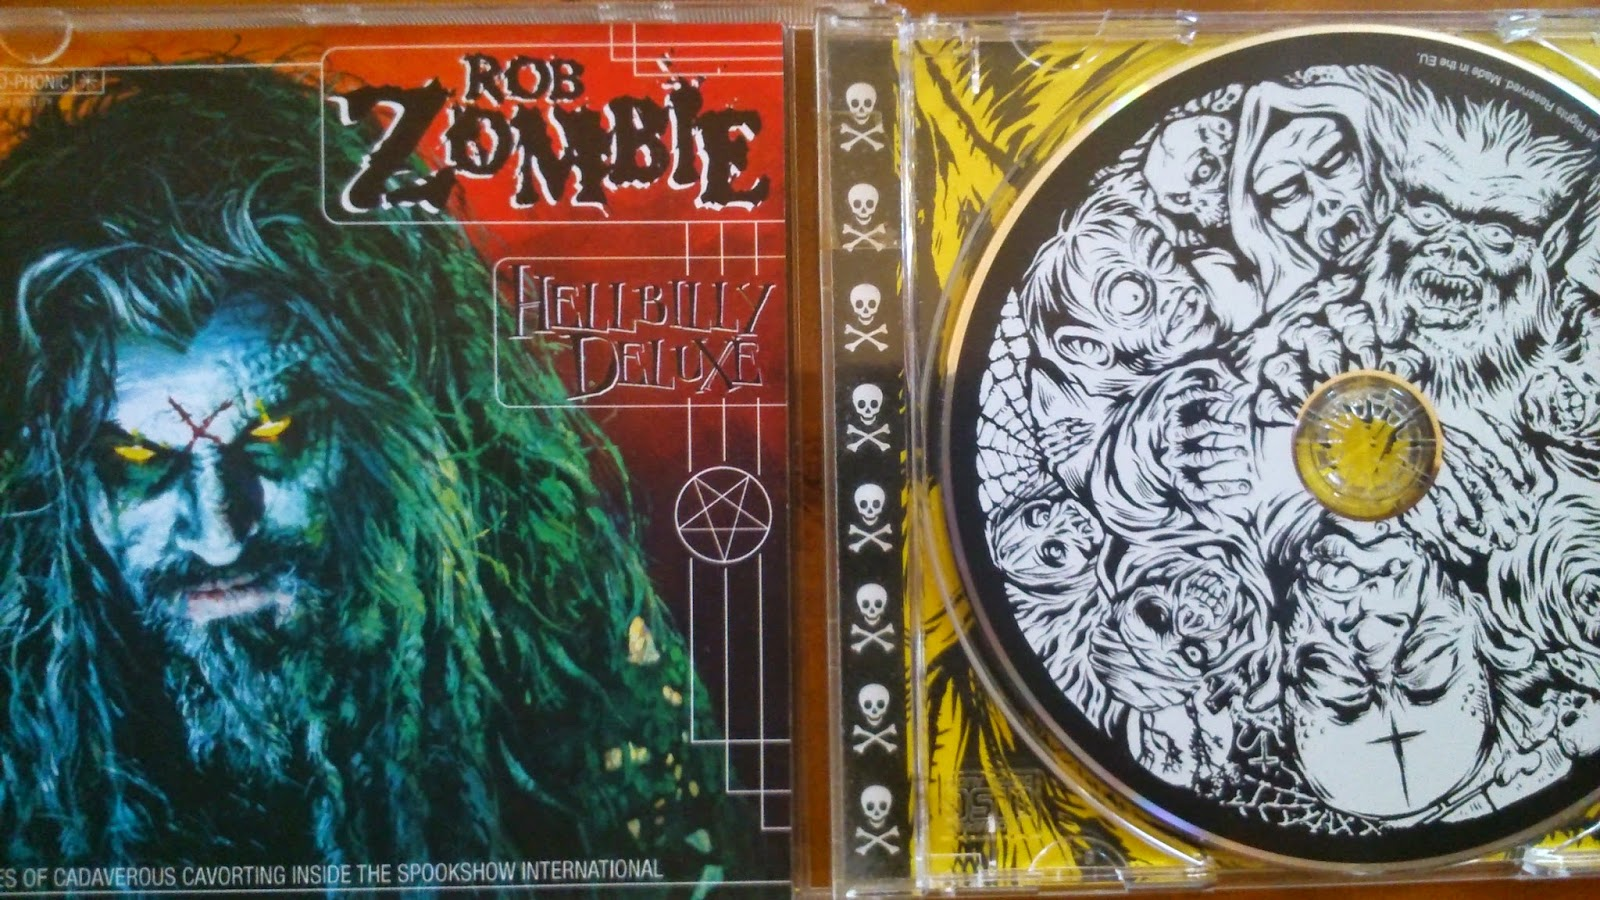 Hellbilly Deluxe, Rob Zombie